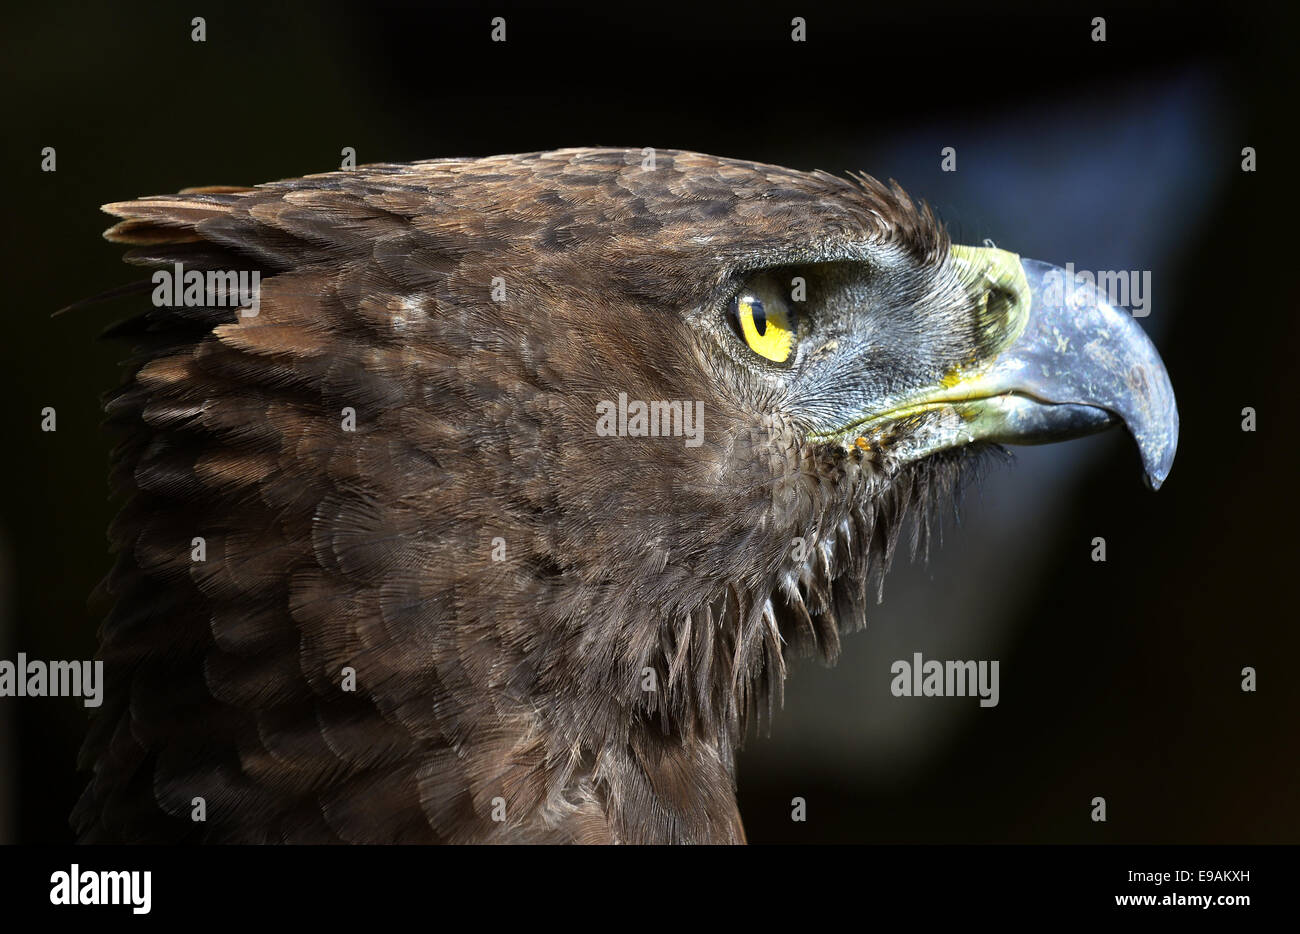 Close-up Portrait of a martial eagle (Polemaetus bellicosus), South Africa - Stock Image